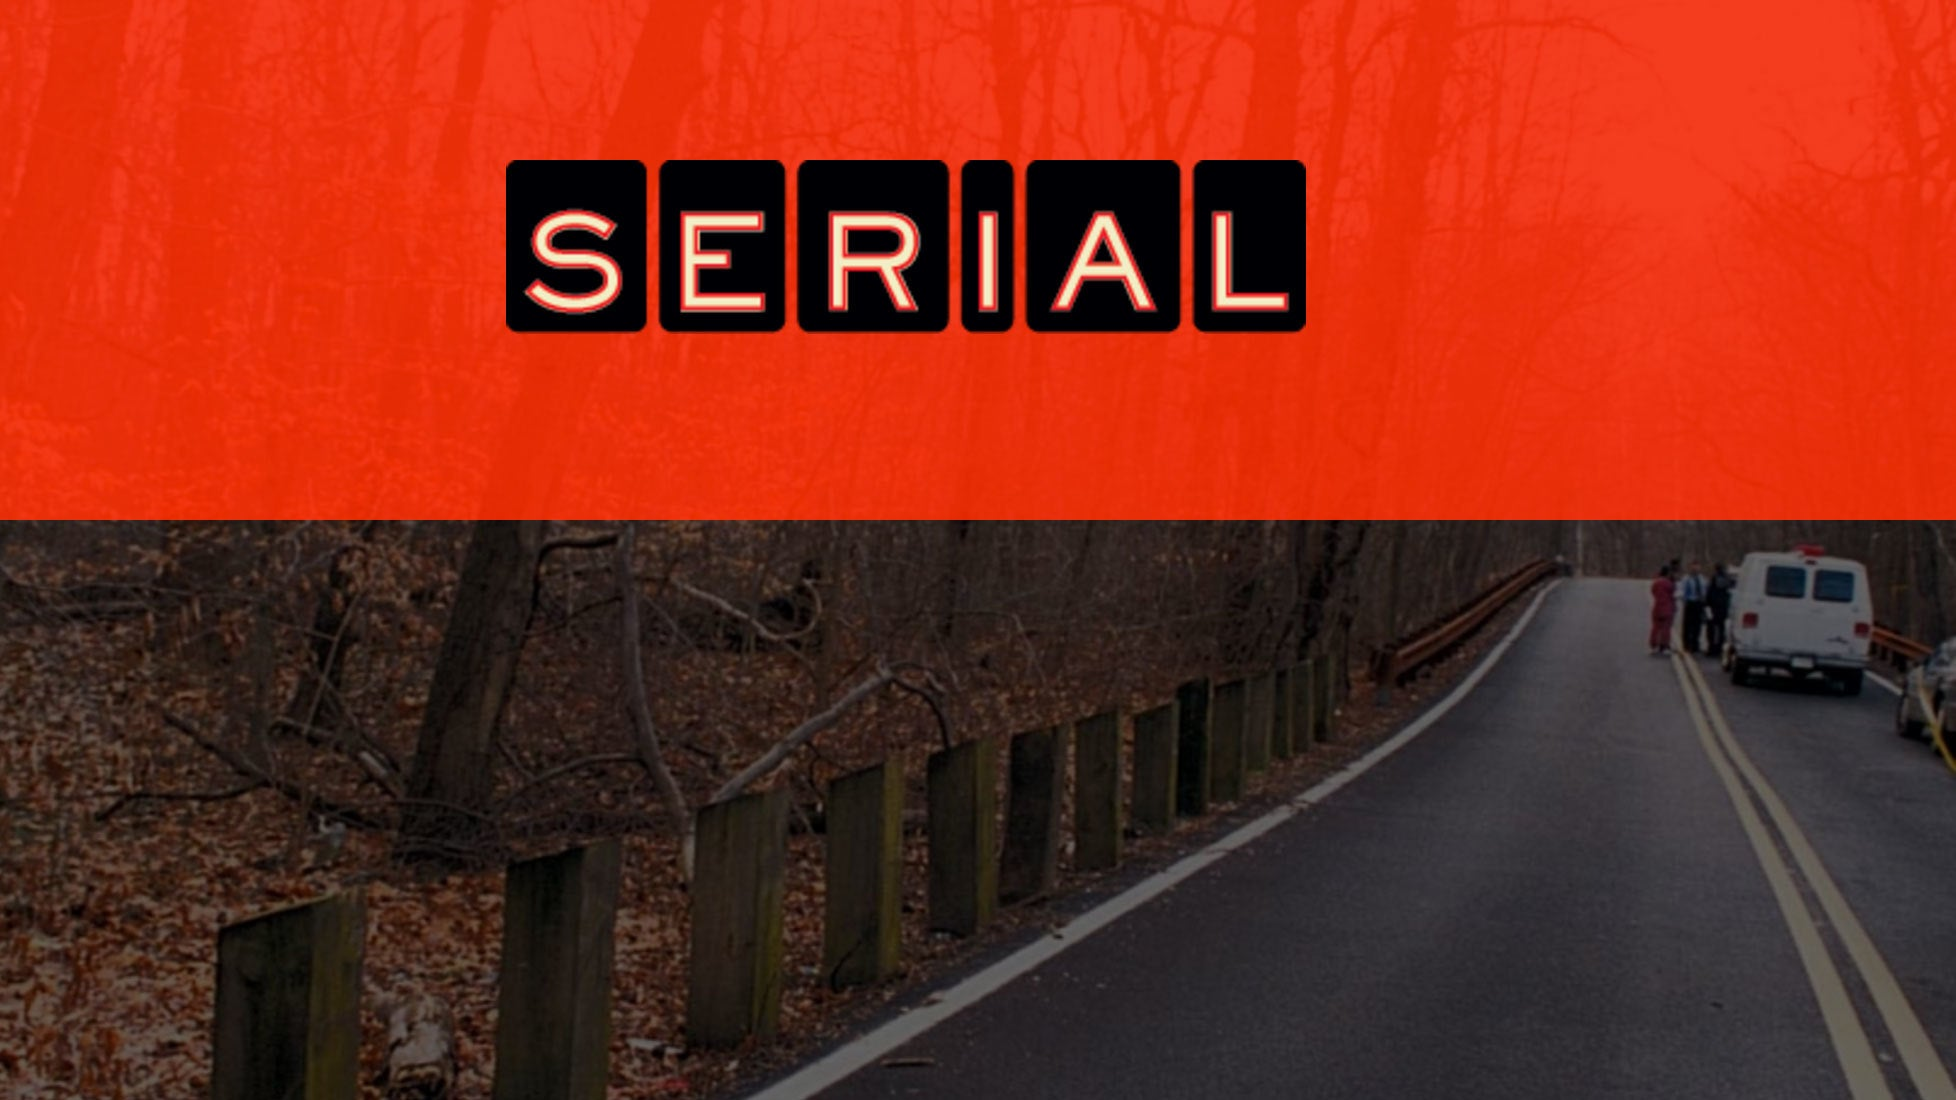 Adnan Syed, Subject of Serial, Granted New Trial